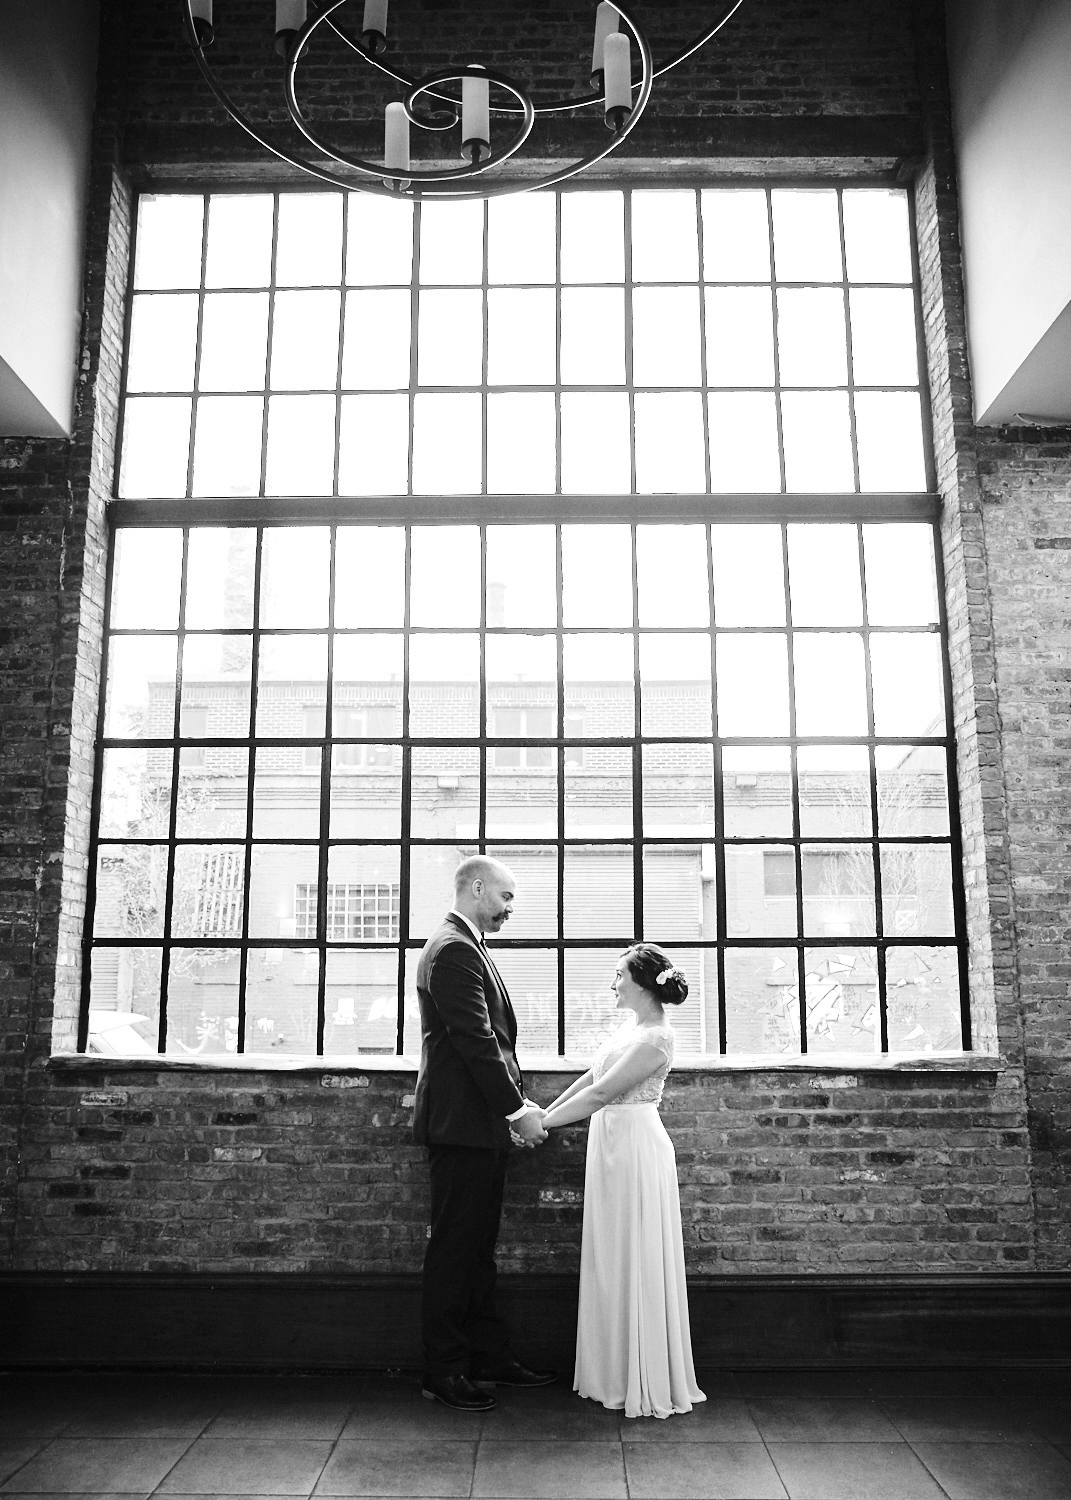 161022_A&B_26BridgeStWedding_By_BriJohnsonWeddings_0059.jpg